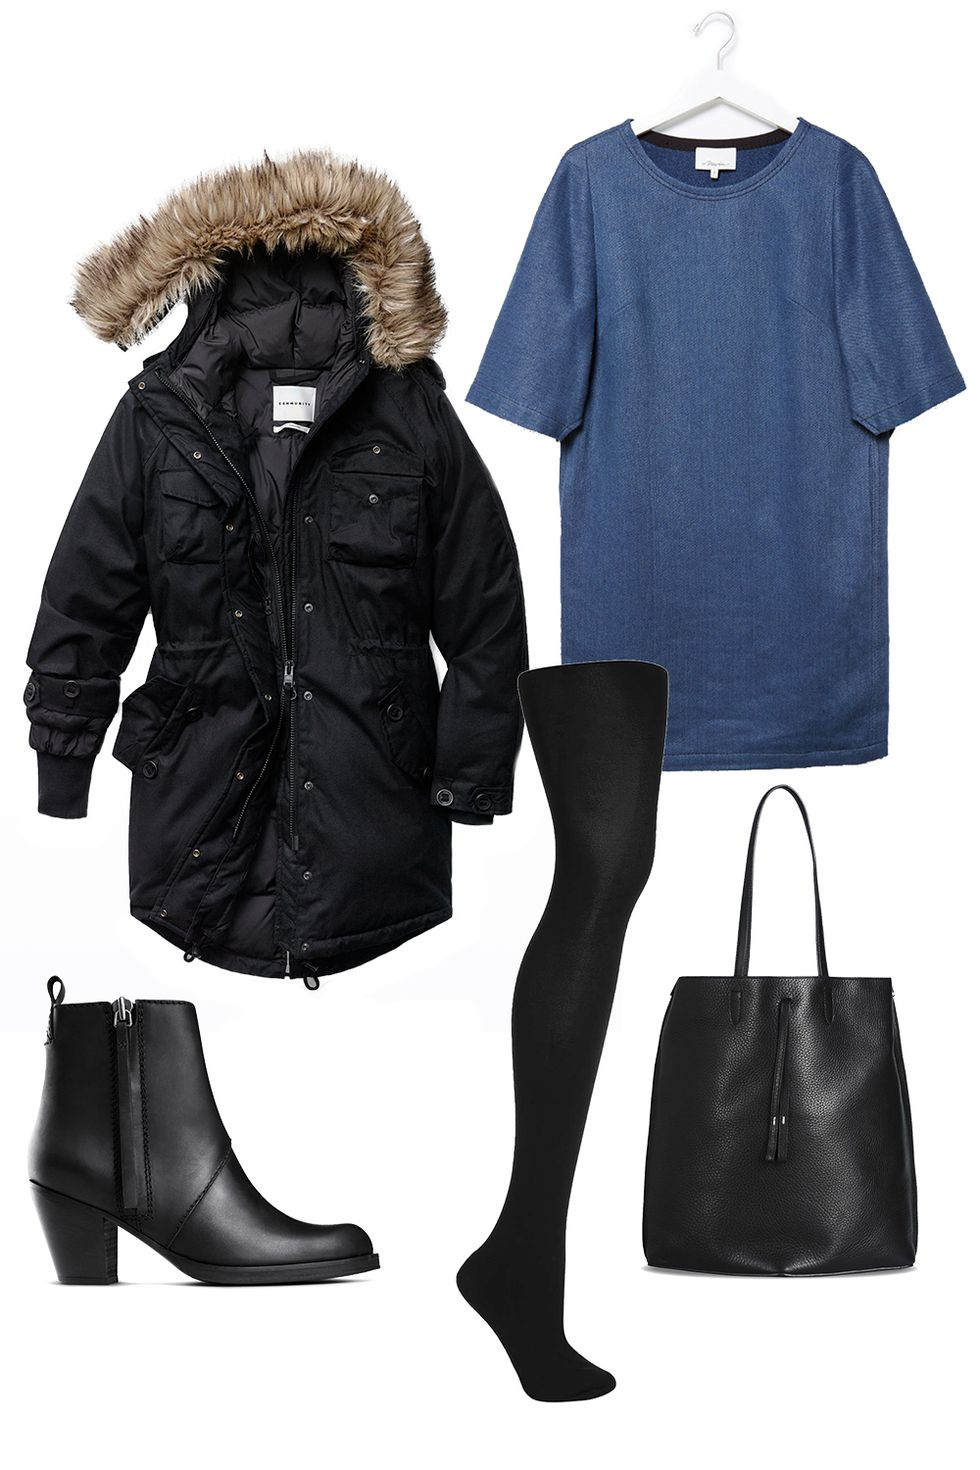 how-to-style-blue-med-dress-tshirt-black-jacket-coat-parka-black-tights-black-bag-tote-black-shoe-booties-fall-winter-fashion-work.jpg